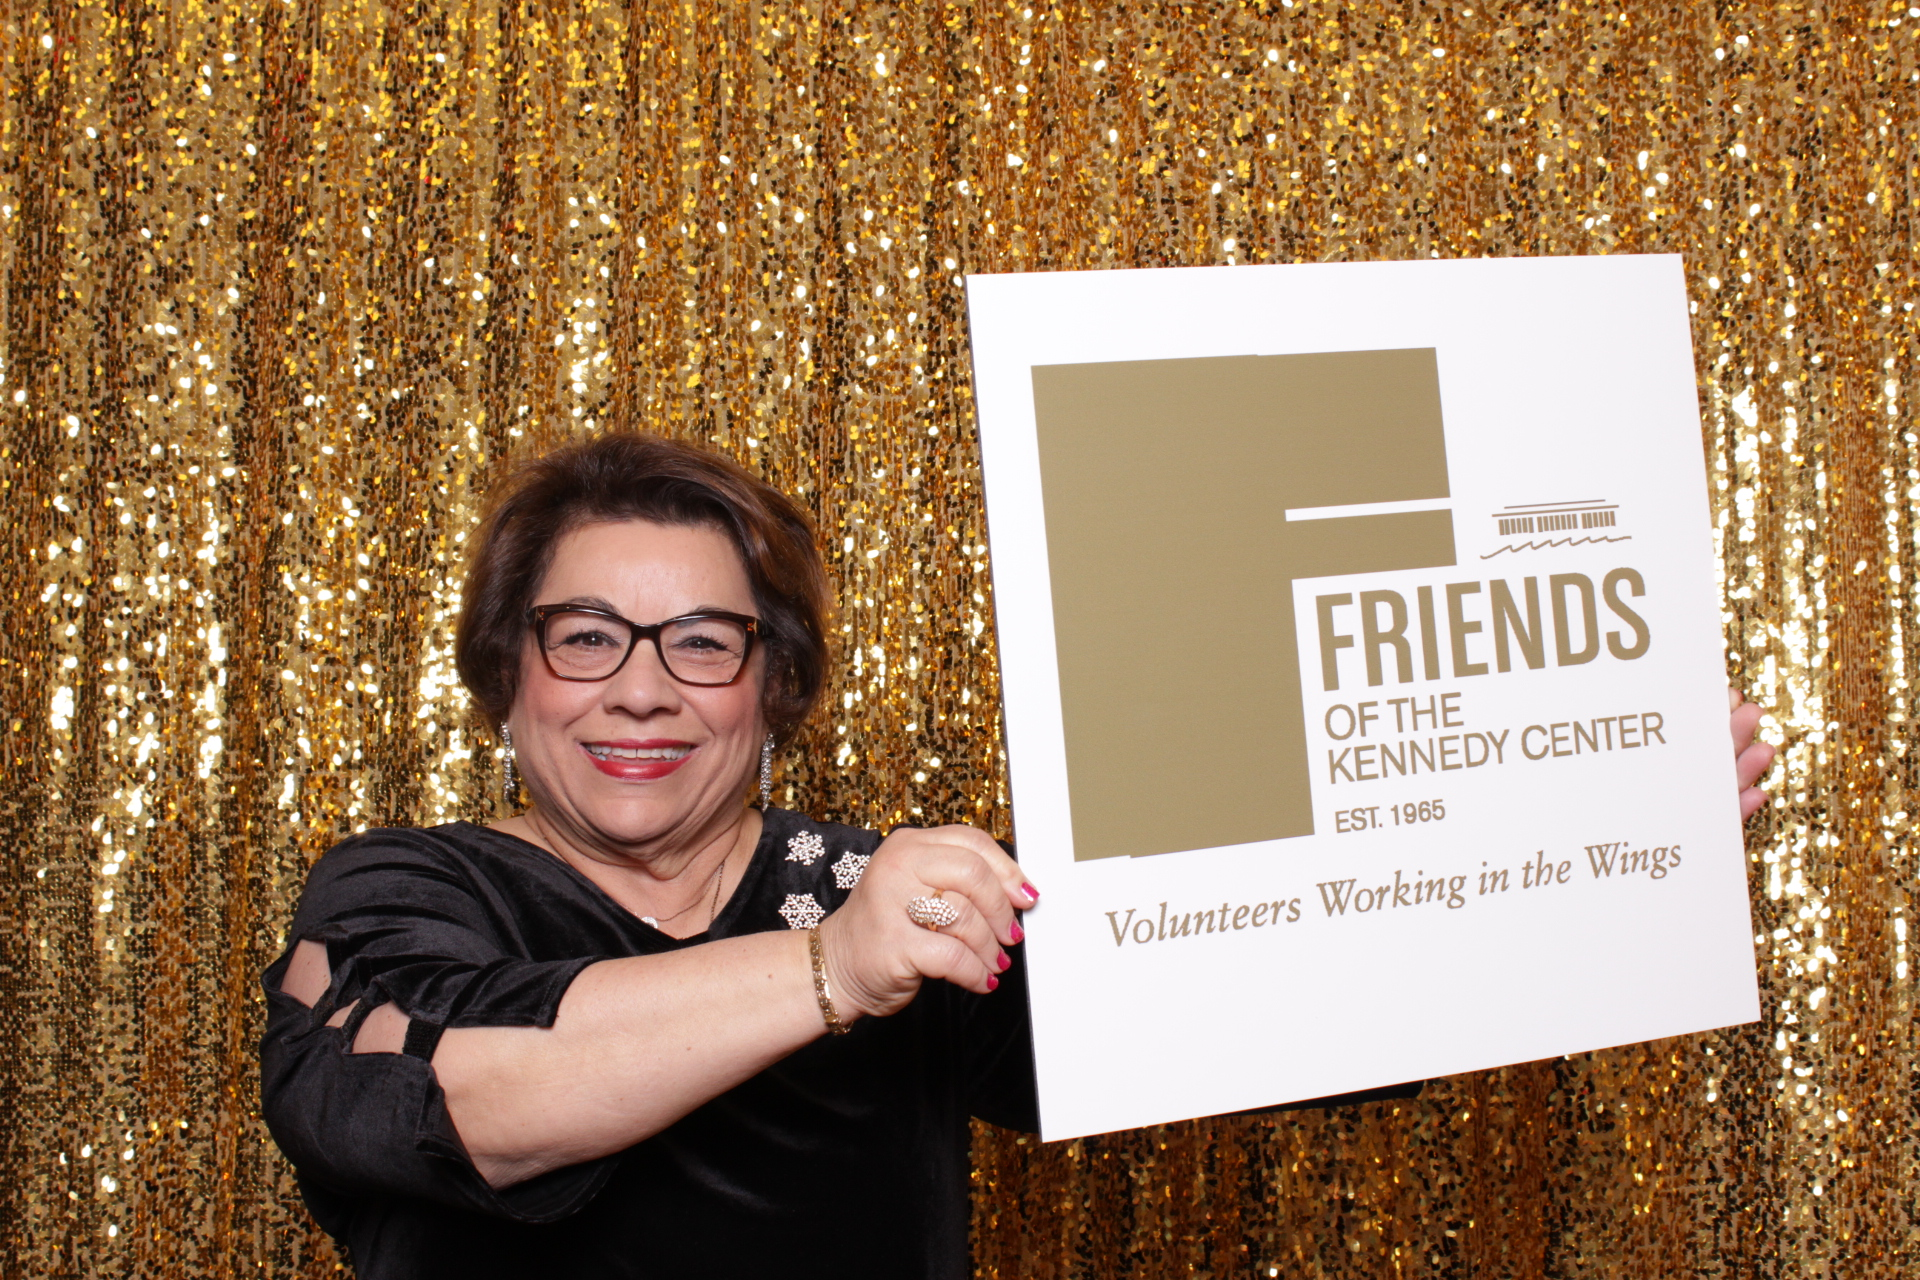 50TH ANNIVERSARY OF THE FRIENDS OF THE KENNEDY CENTER | HOT PINK PHOTO BOOTH